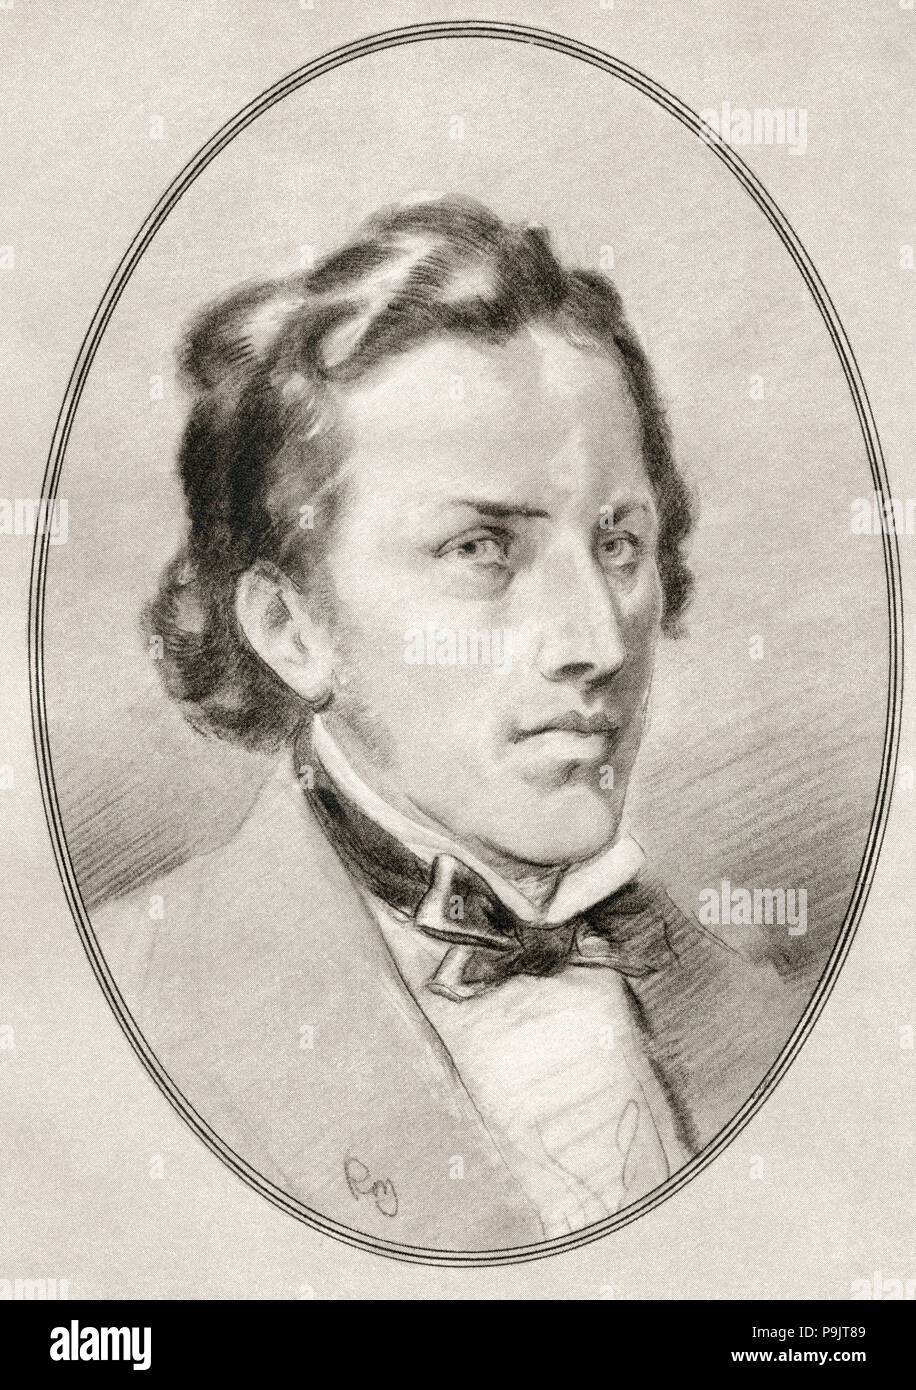 Frédéric François Chopin, 1810 – 1849.  Polish composer and virtuoso pianist of the Romantic era.  Illustration by Gordon Ross, American artist and illustrator (1873-1946), from Living Biographies of Great Composers. - Stock Image